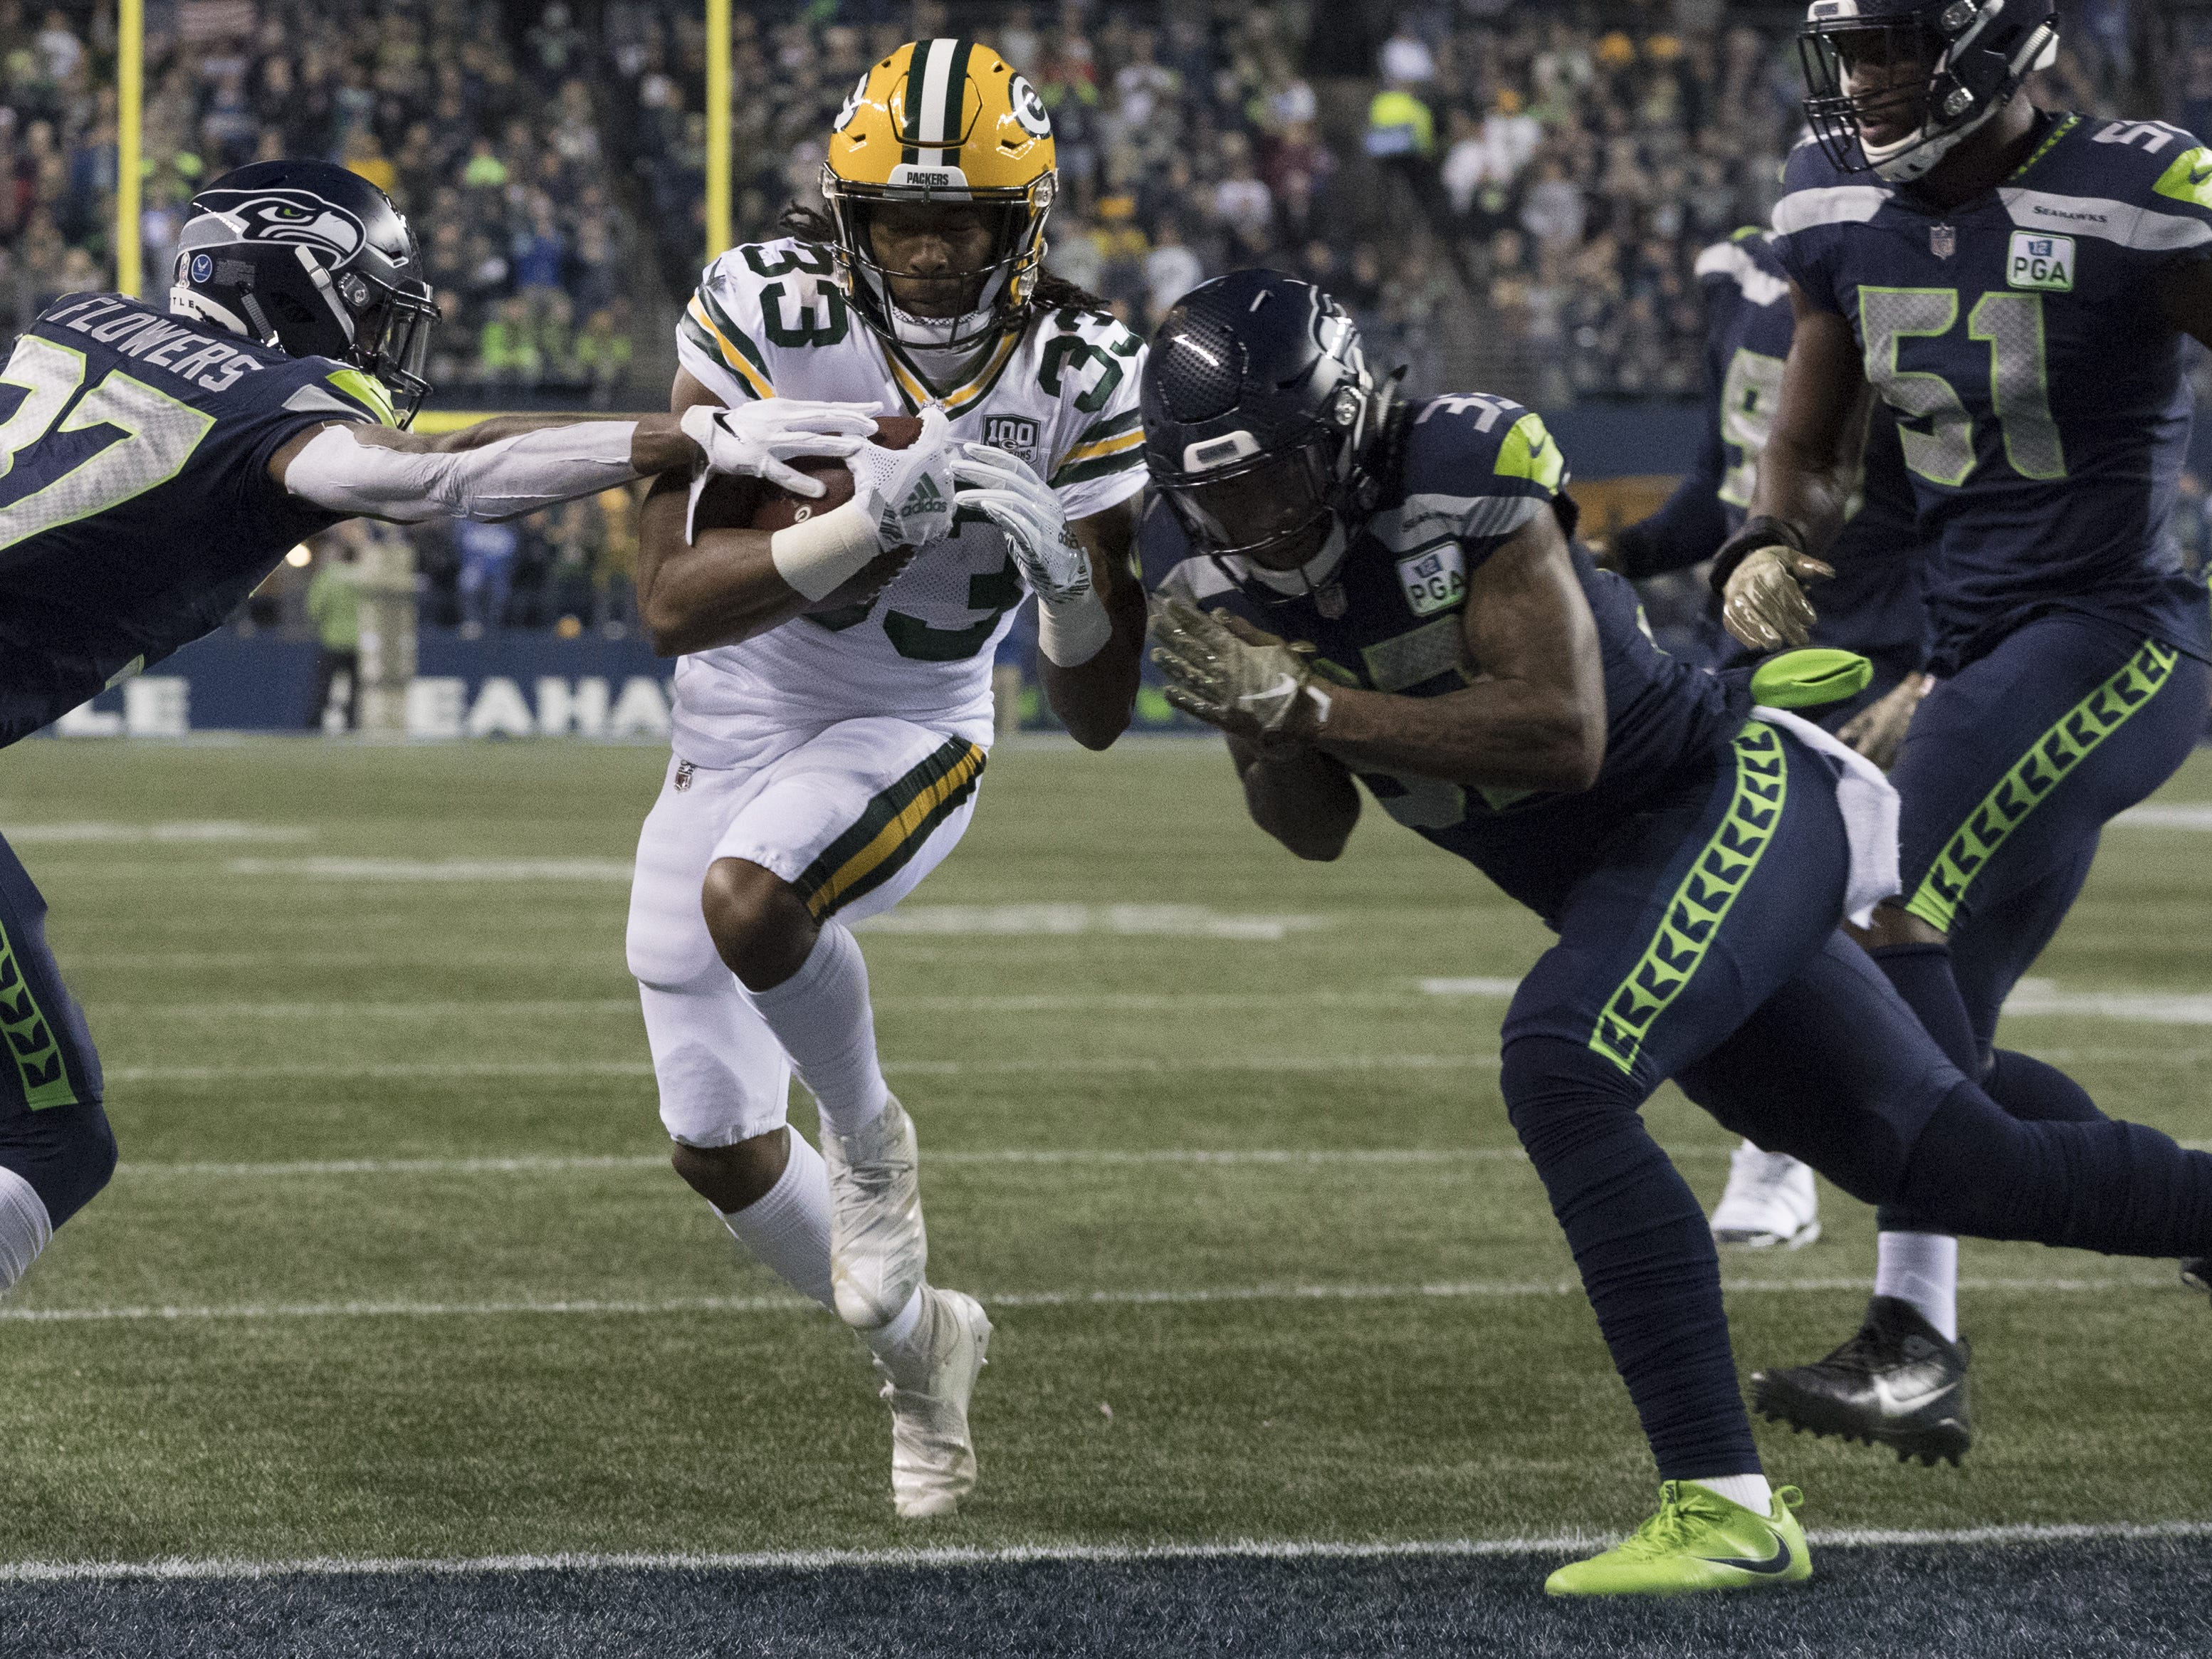 Green Bay Packers running back Aaron Jones (33) scores a touchdown on an eight yard run during the first quarter of their game against the Seattle Seahawks Thursday, November 25, 2018 at CenturyLink Field in Seattle, Wash.